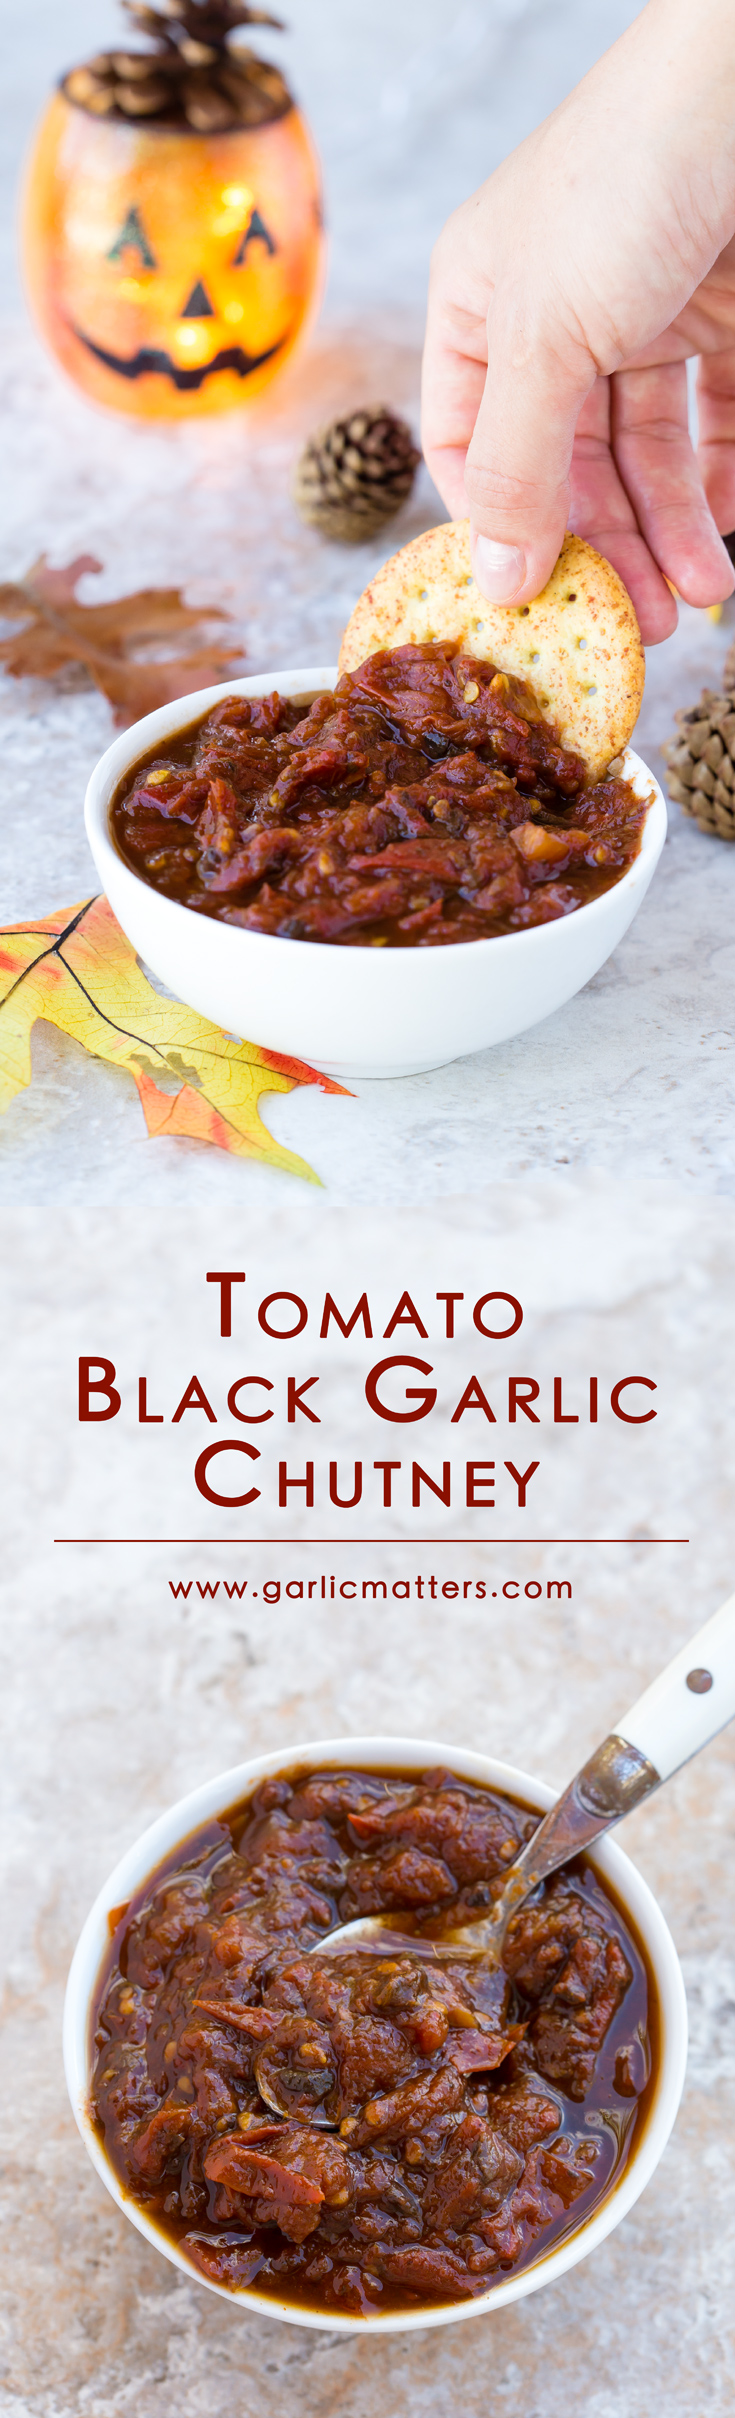 Tomato and Black Garlic Chutney is a delicious, vegan, sweet & sour, umami notes underlined condiment. It is an easy, versatile, one pan, 1 hour recipe made with only two ingredients and packed with an amazing flavour. It works great in sandwiches, smeared over a piece of meat or as a dip.